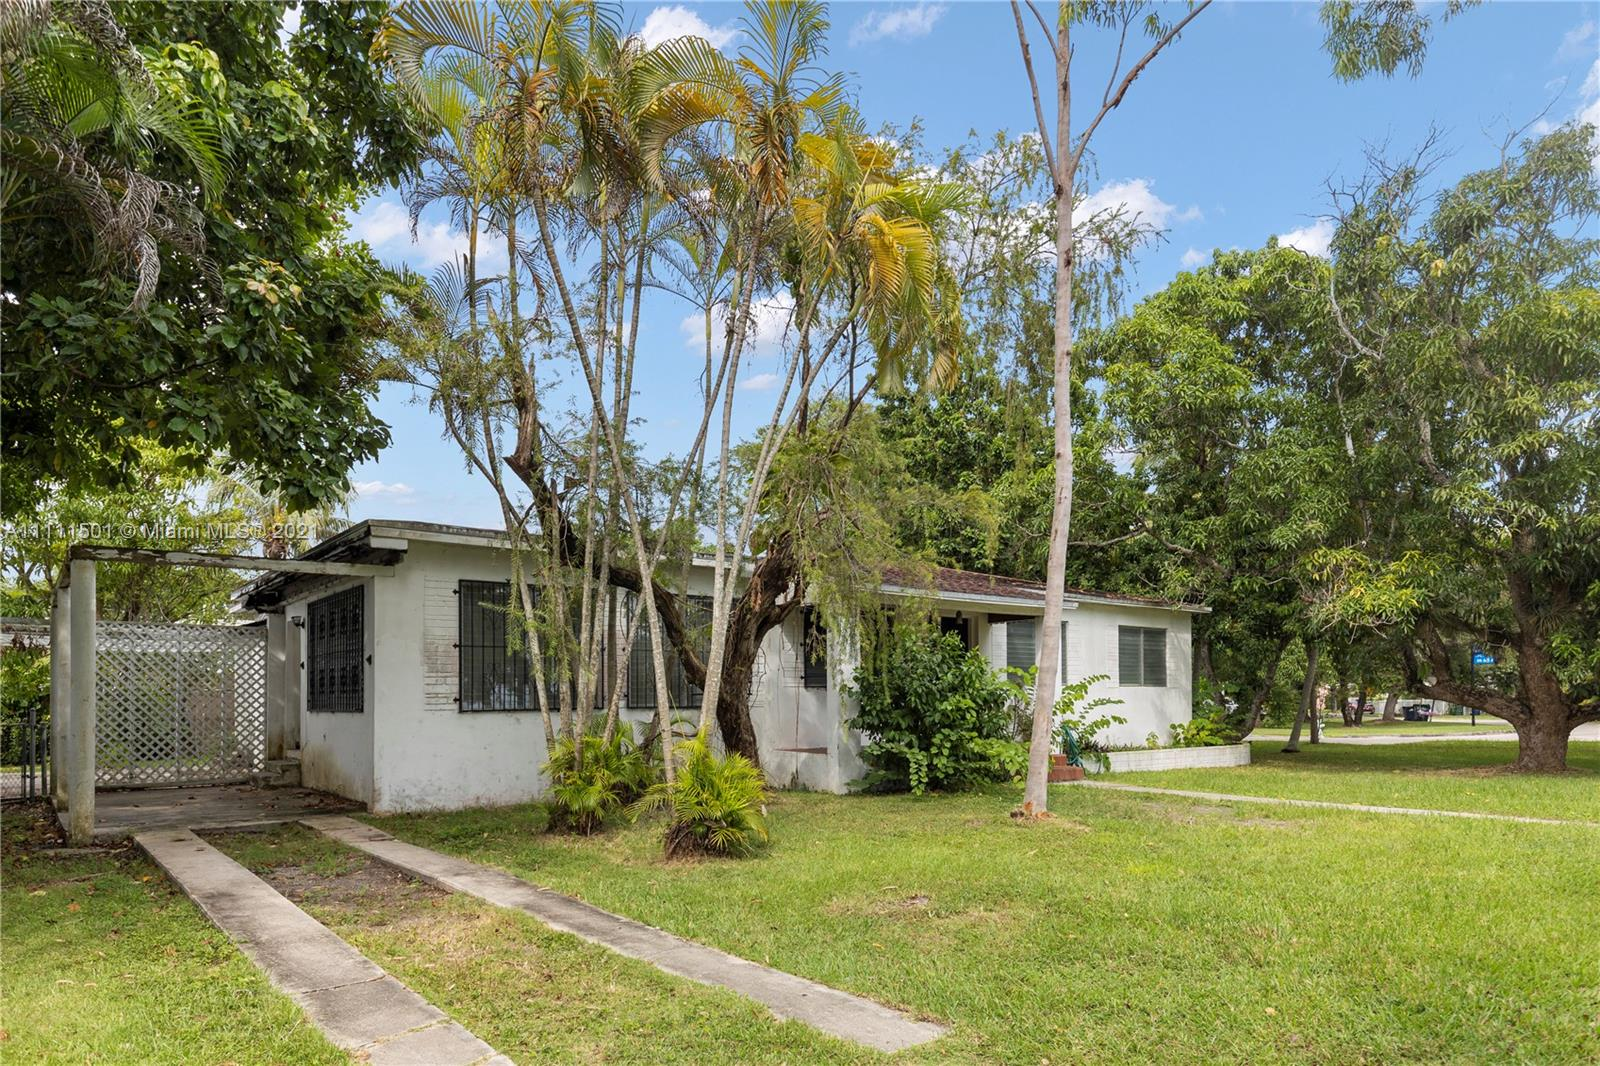 Single Family Home,For Sale,6501 SW 78th Ter, South Miami, Florida 33143,Brickell,realty,broker,condos near me